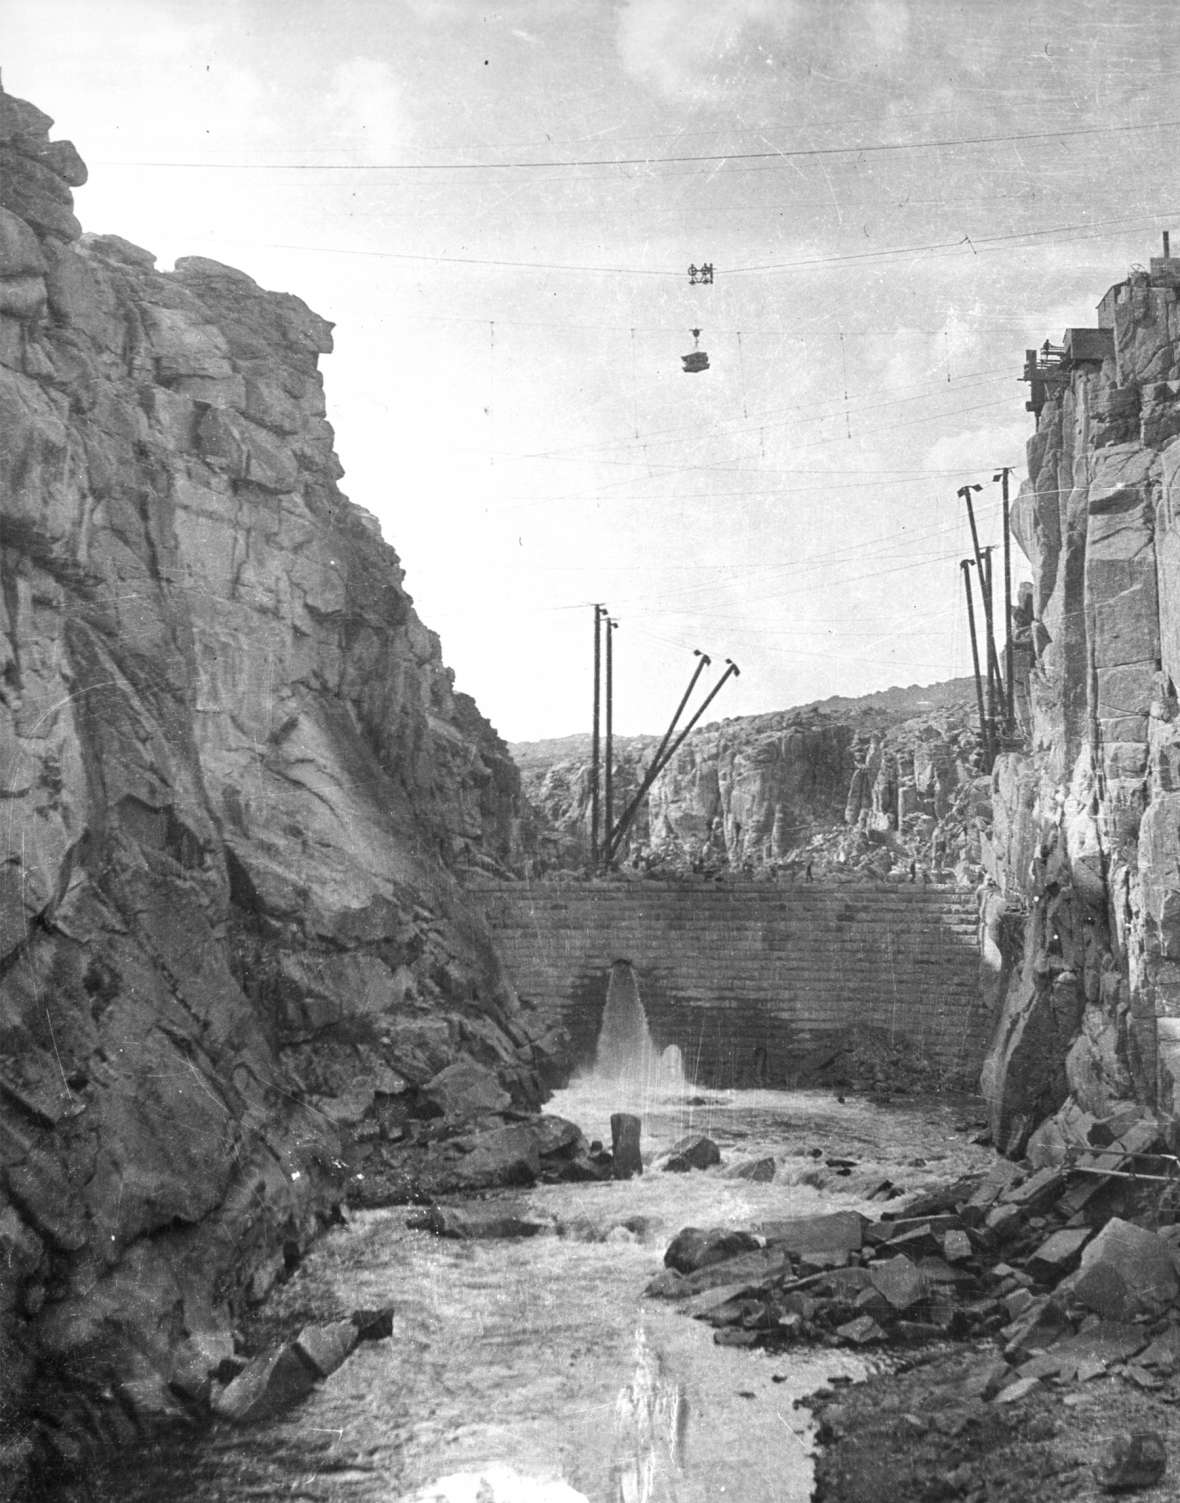 Pathfinder Dam on the North Platte River, built of granite blocks and shown here under construction about 1906, was one of the first built by the new U.S. Reclamation Service. Casper College Western History Center.